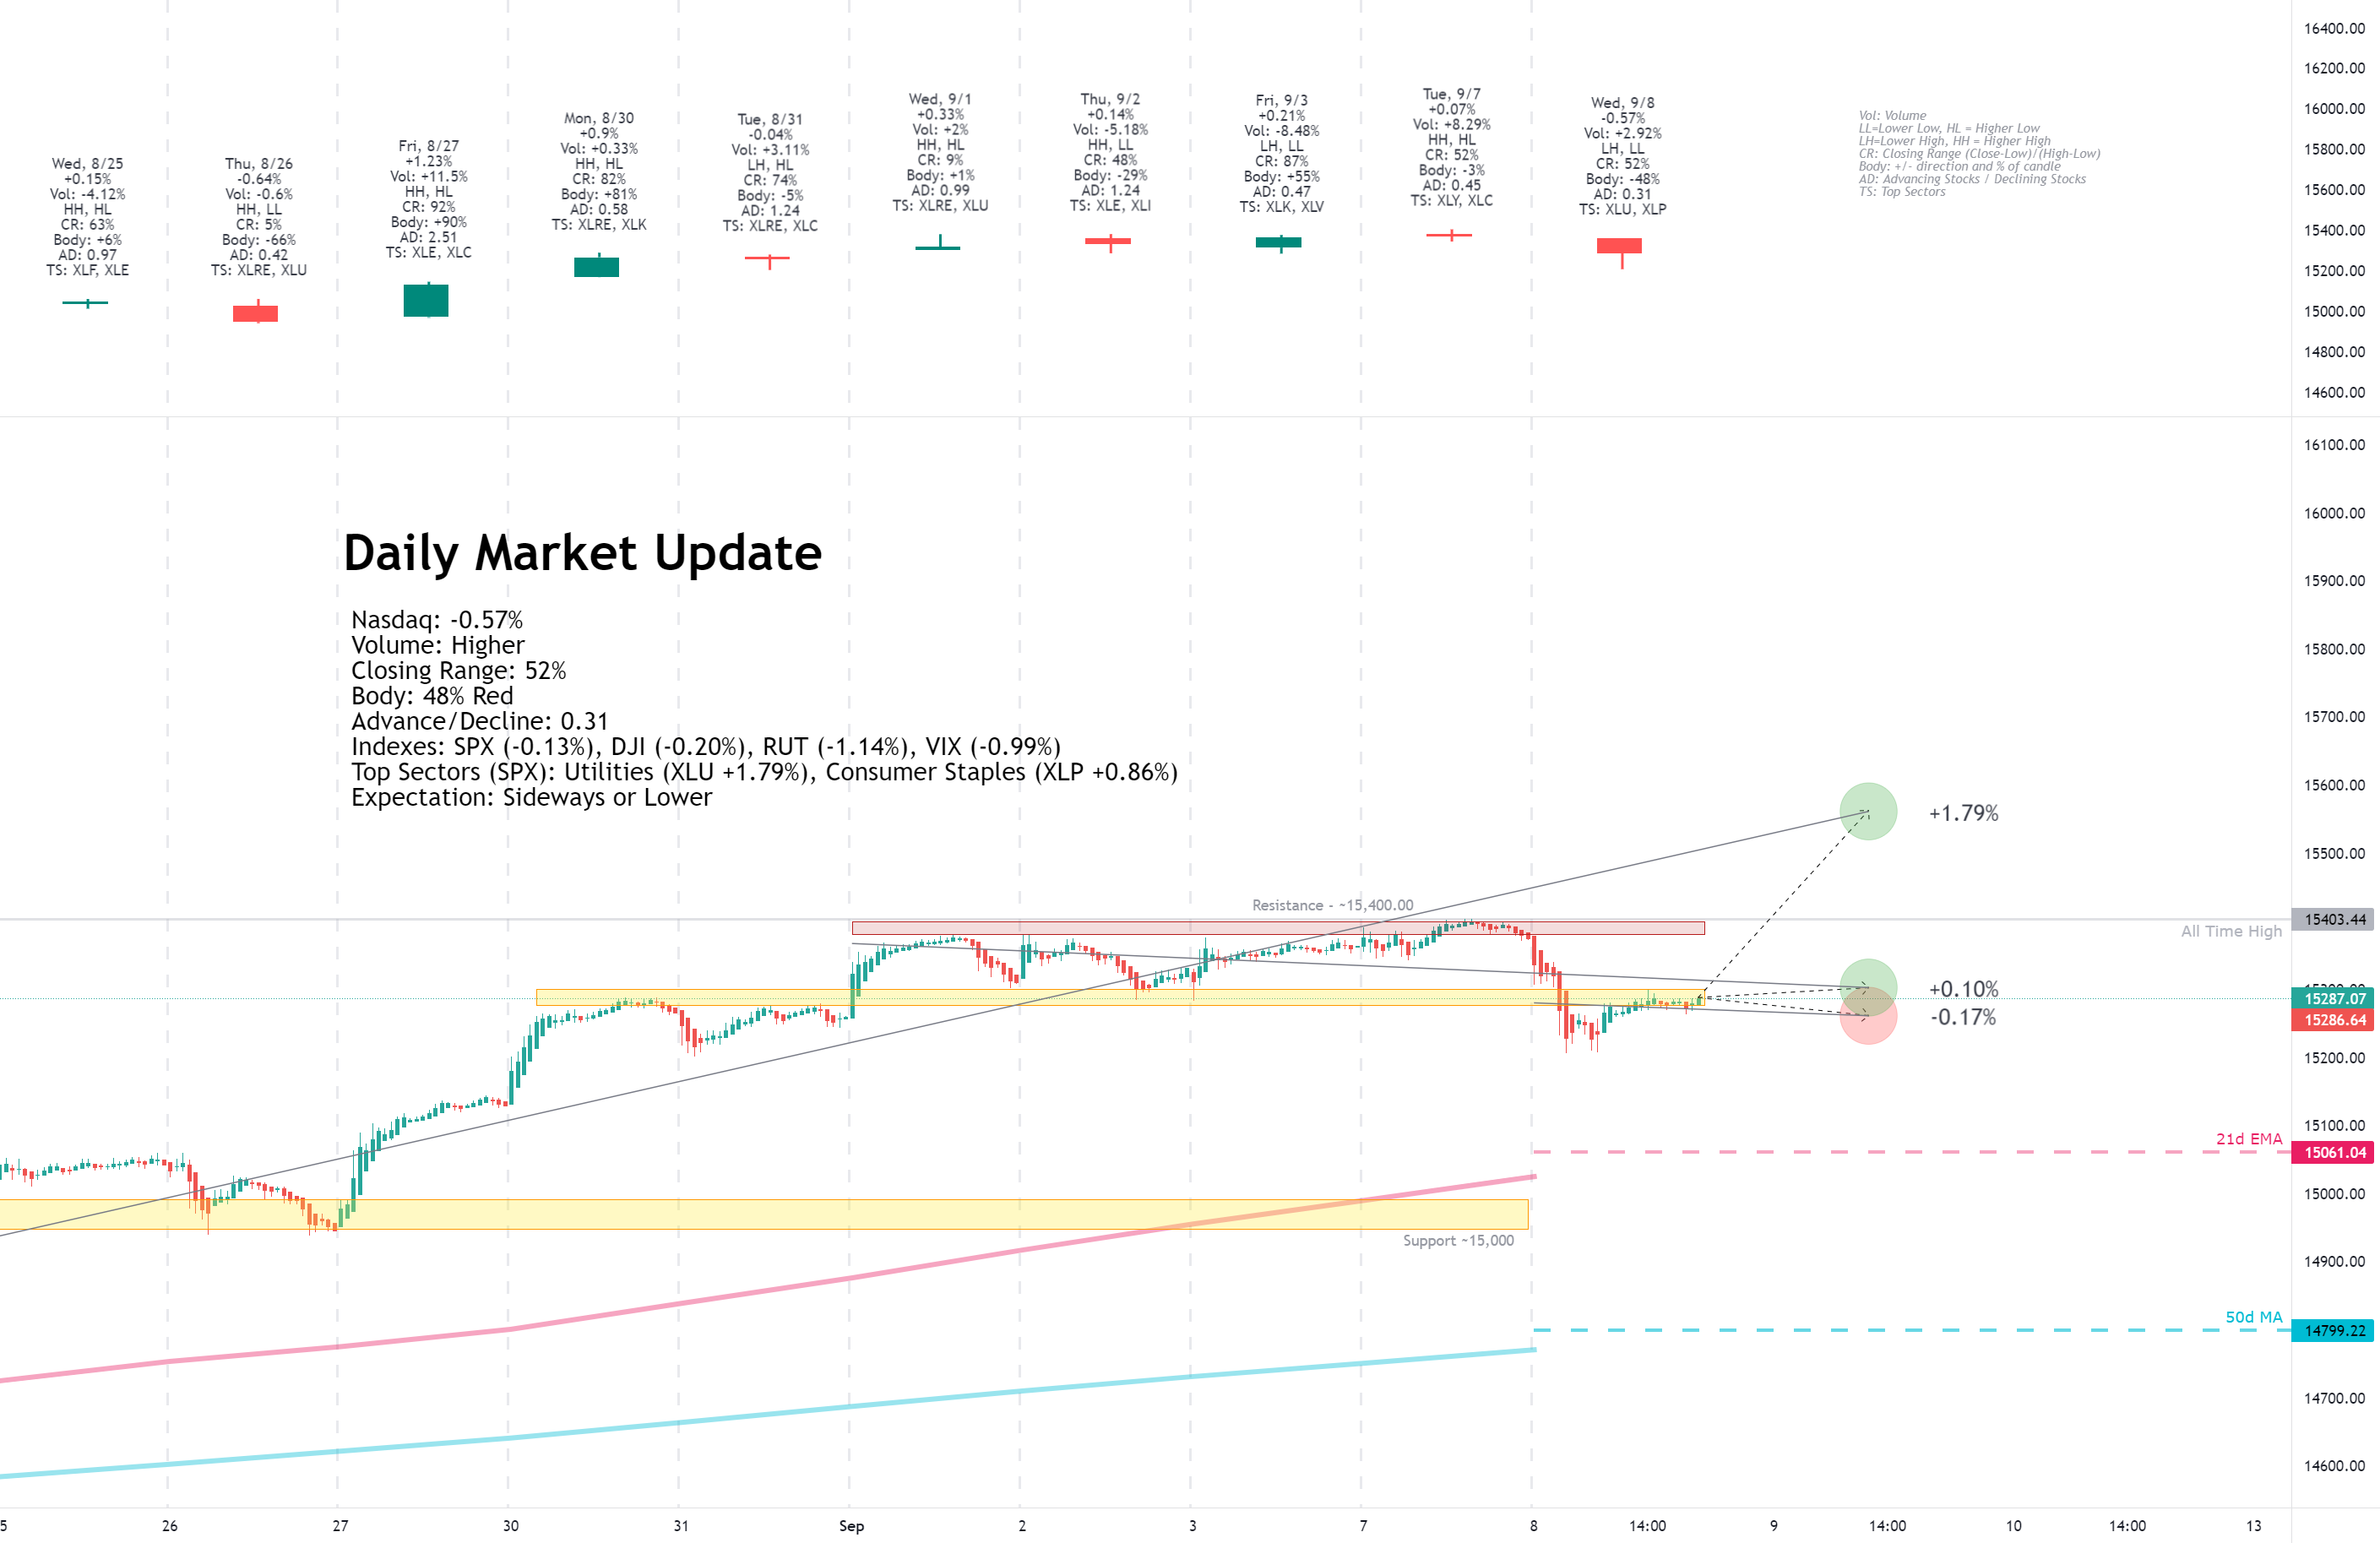 Daily Market Update for 9/8